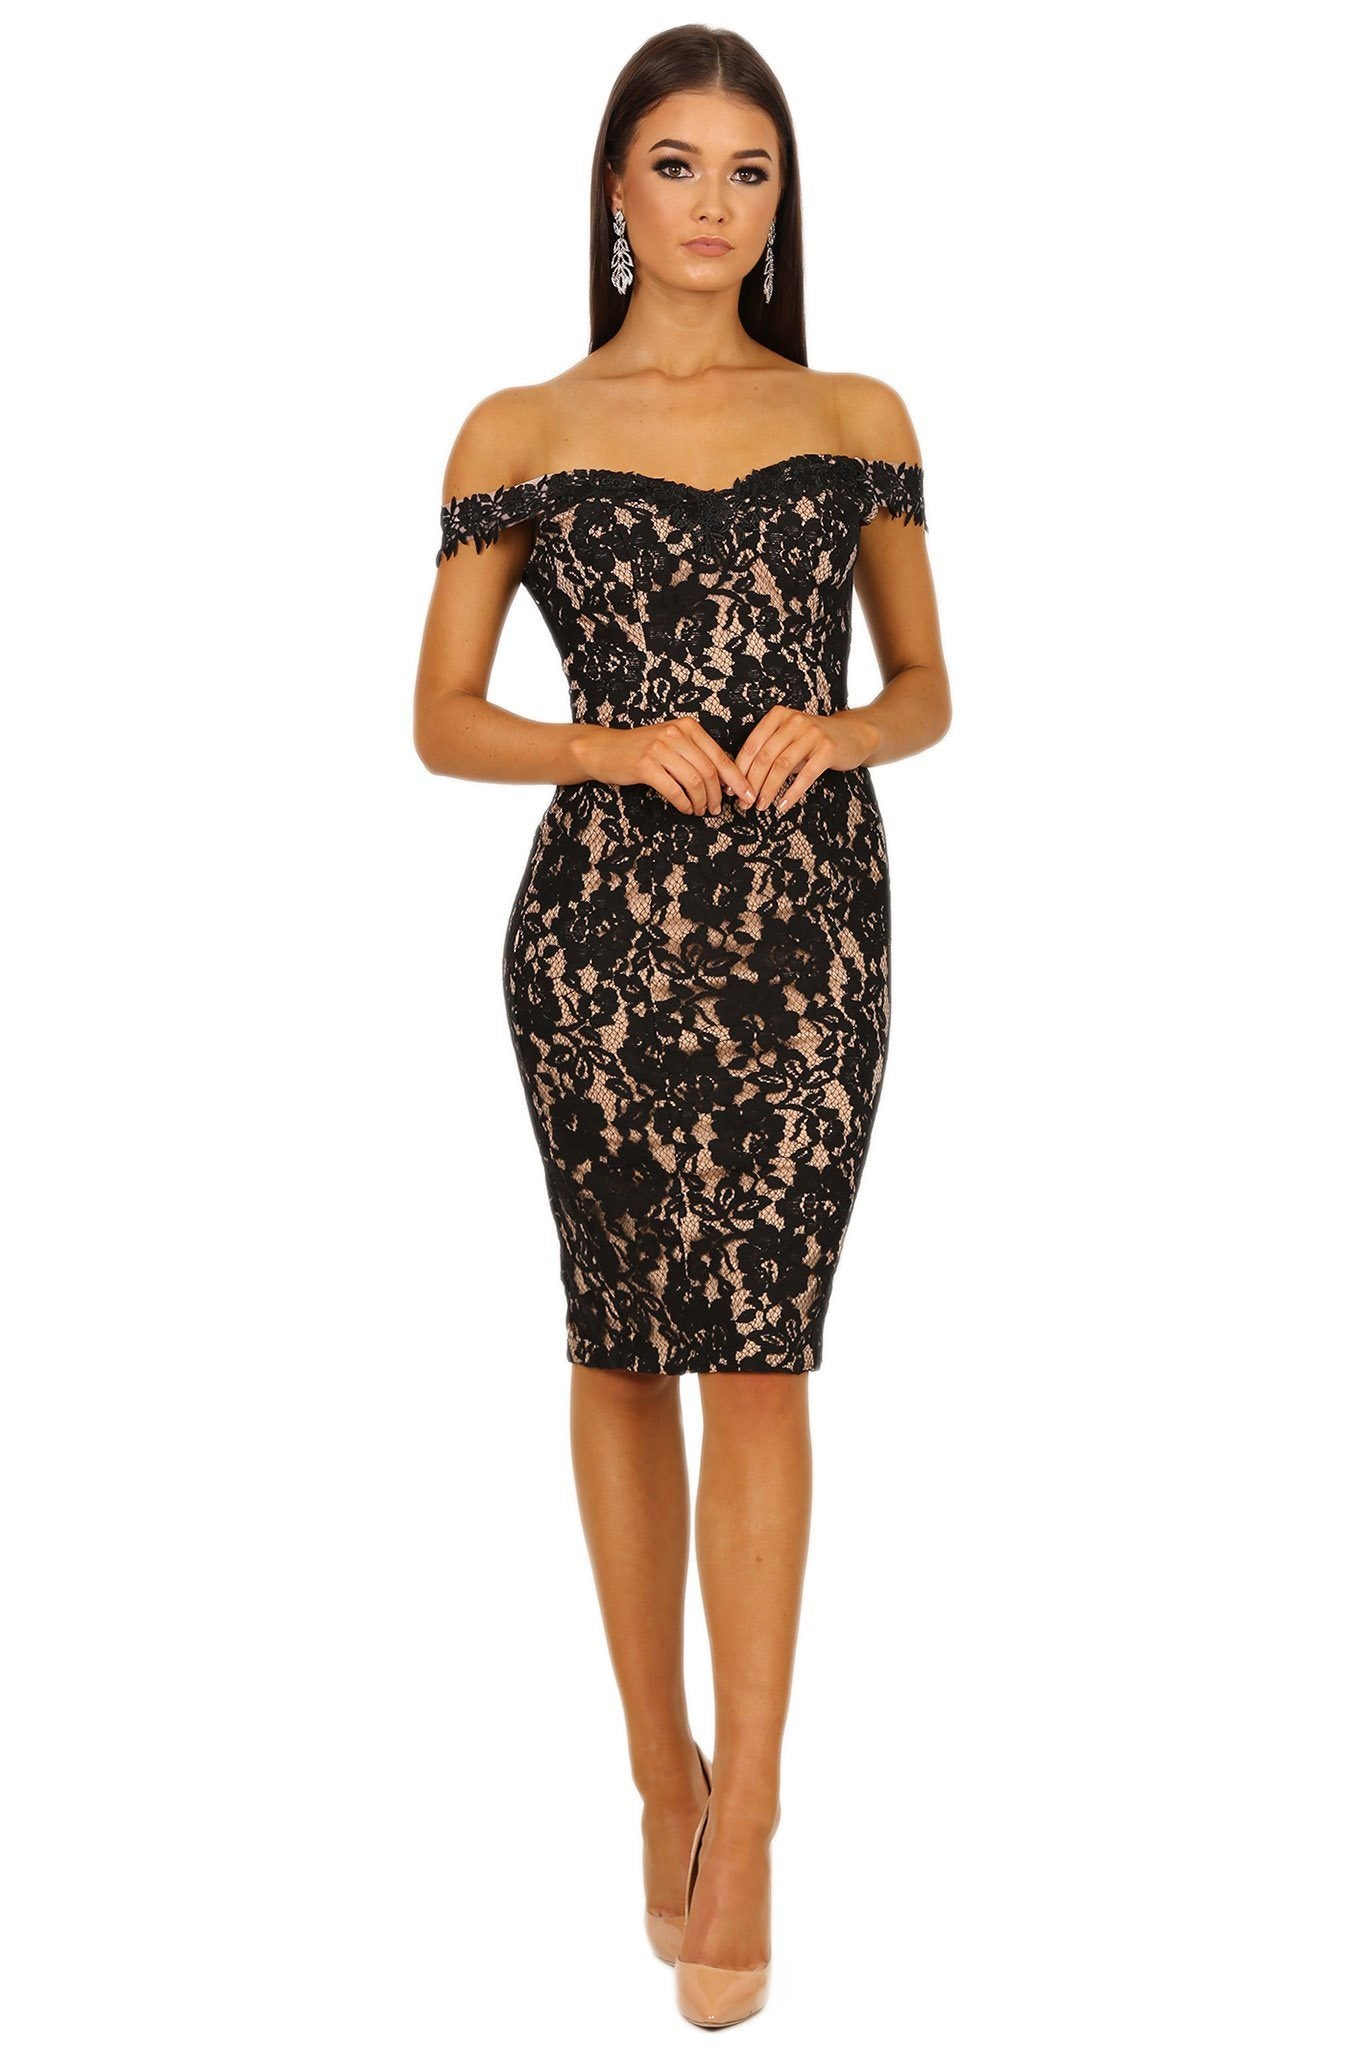 Black lace knee-length dress with beige nude illusion underlay, off the shoulder design, sweetheart neckline